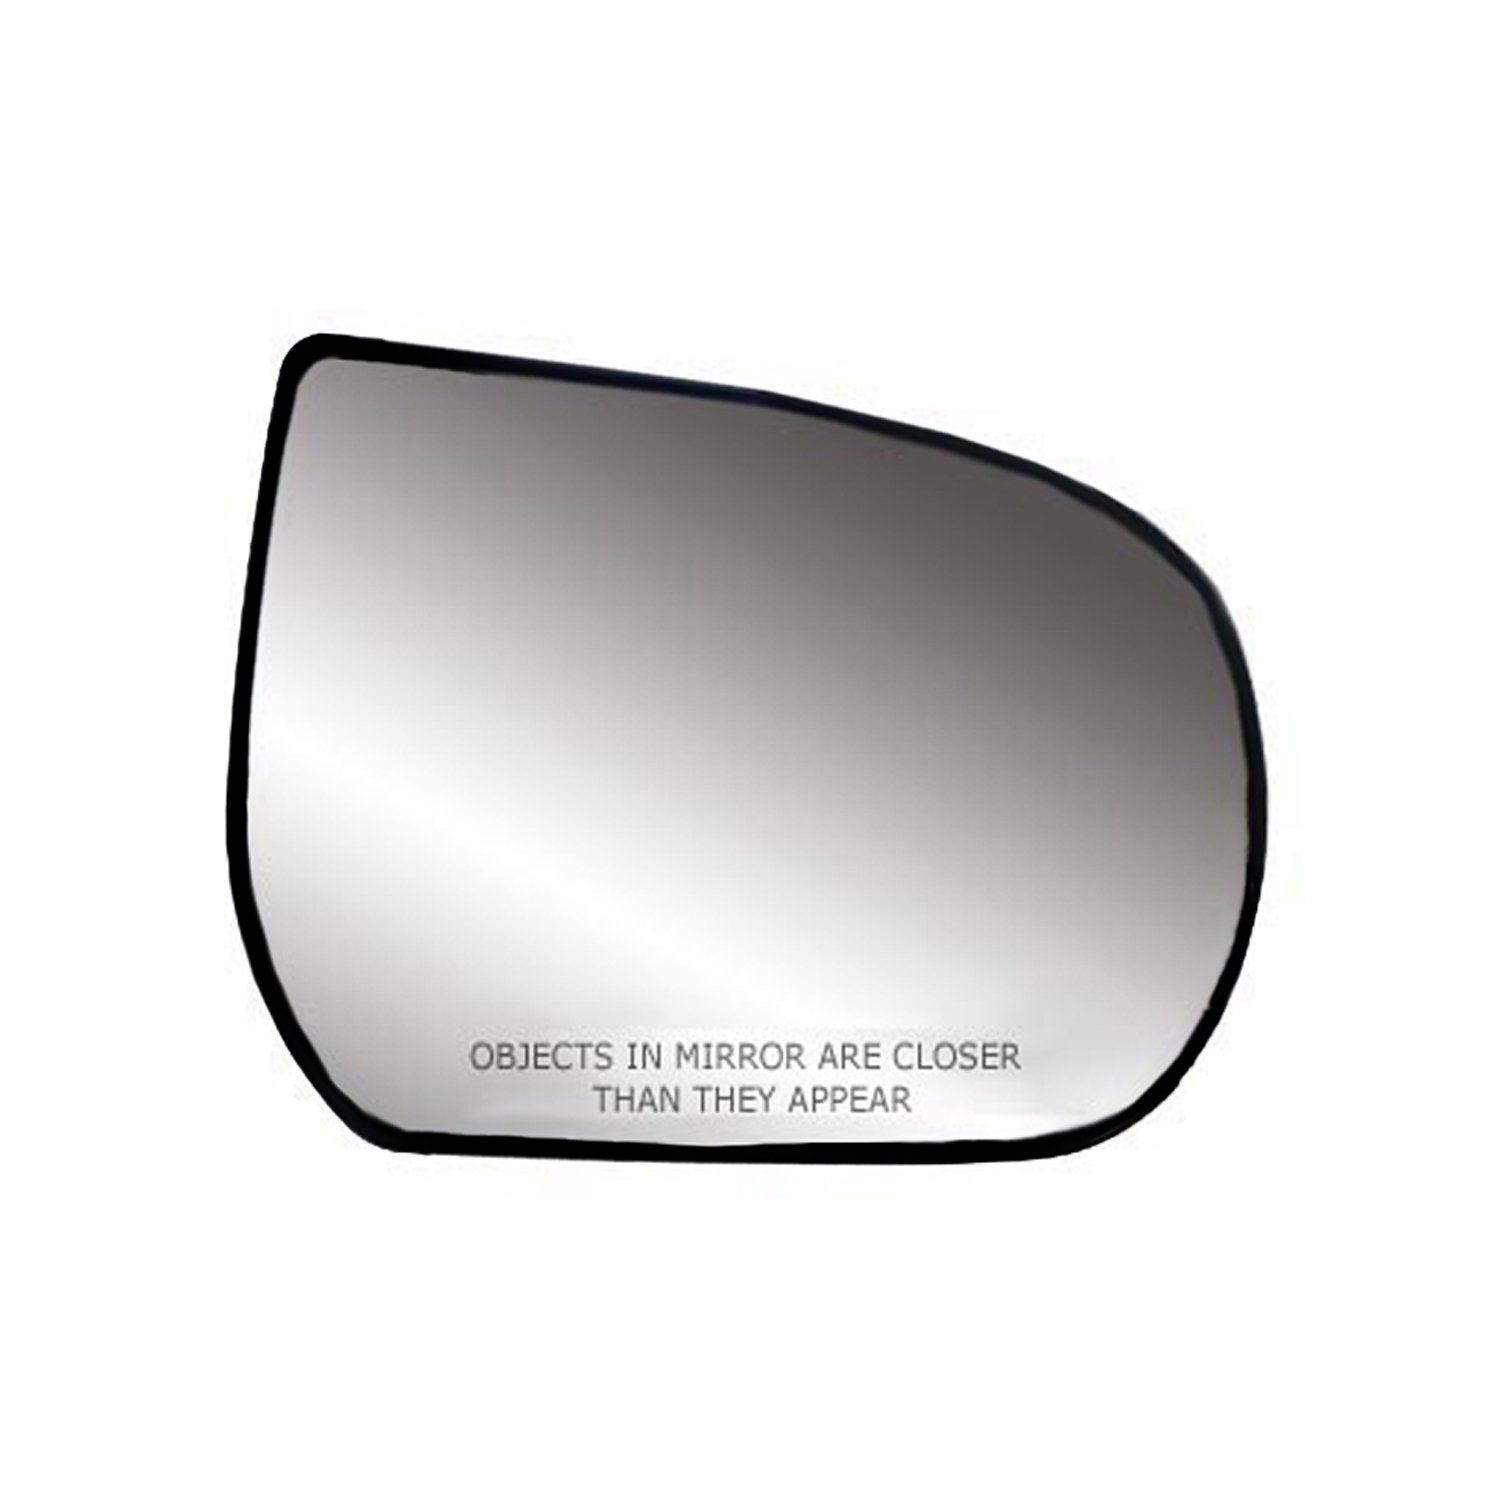 OE Replacement 2005-2007 FORD ESCAPE Door Mirror Glass Assembly Partslink Number FO1325103